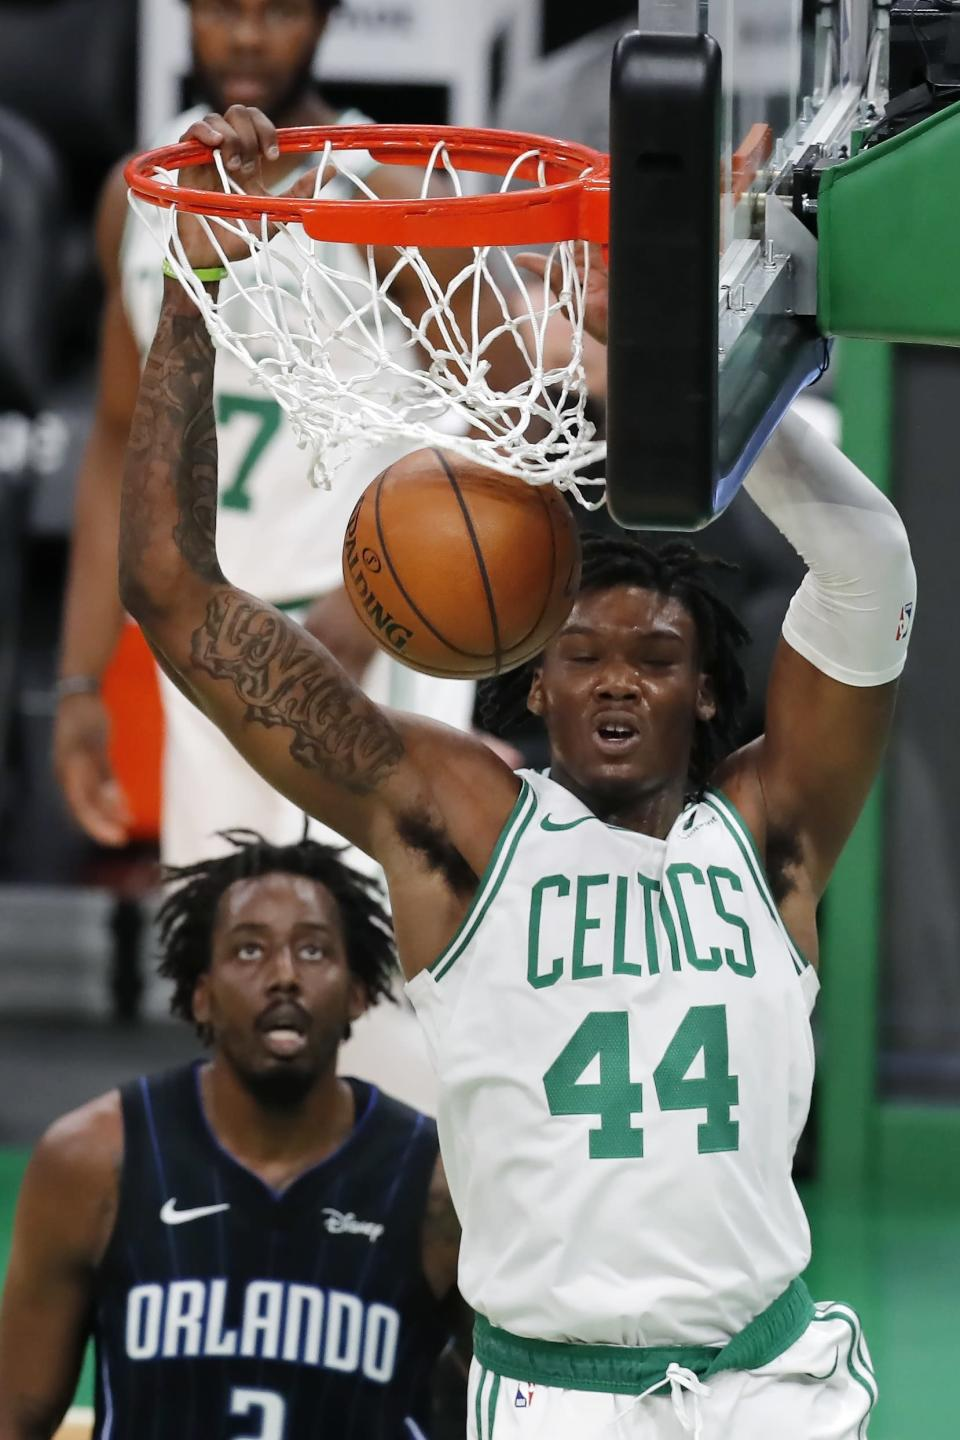 Boston Celtics' Robert Williams III (44) dunks in front of Orlando Magic's Al-Farouq Aminu during the first half of an NBA basketball game, Sunday, March 21, 2021, in Boston. (AP Photo/Michael Dwyer)